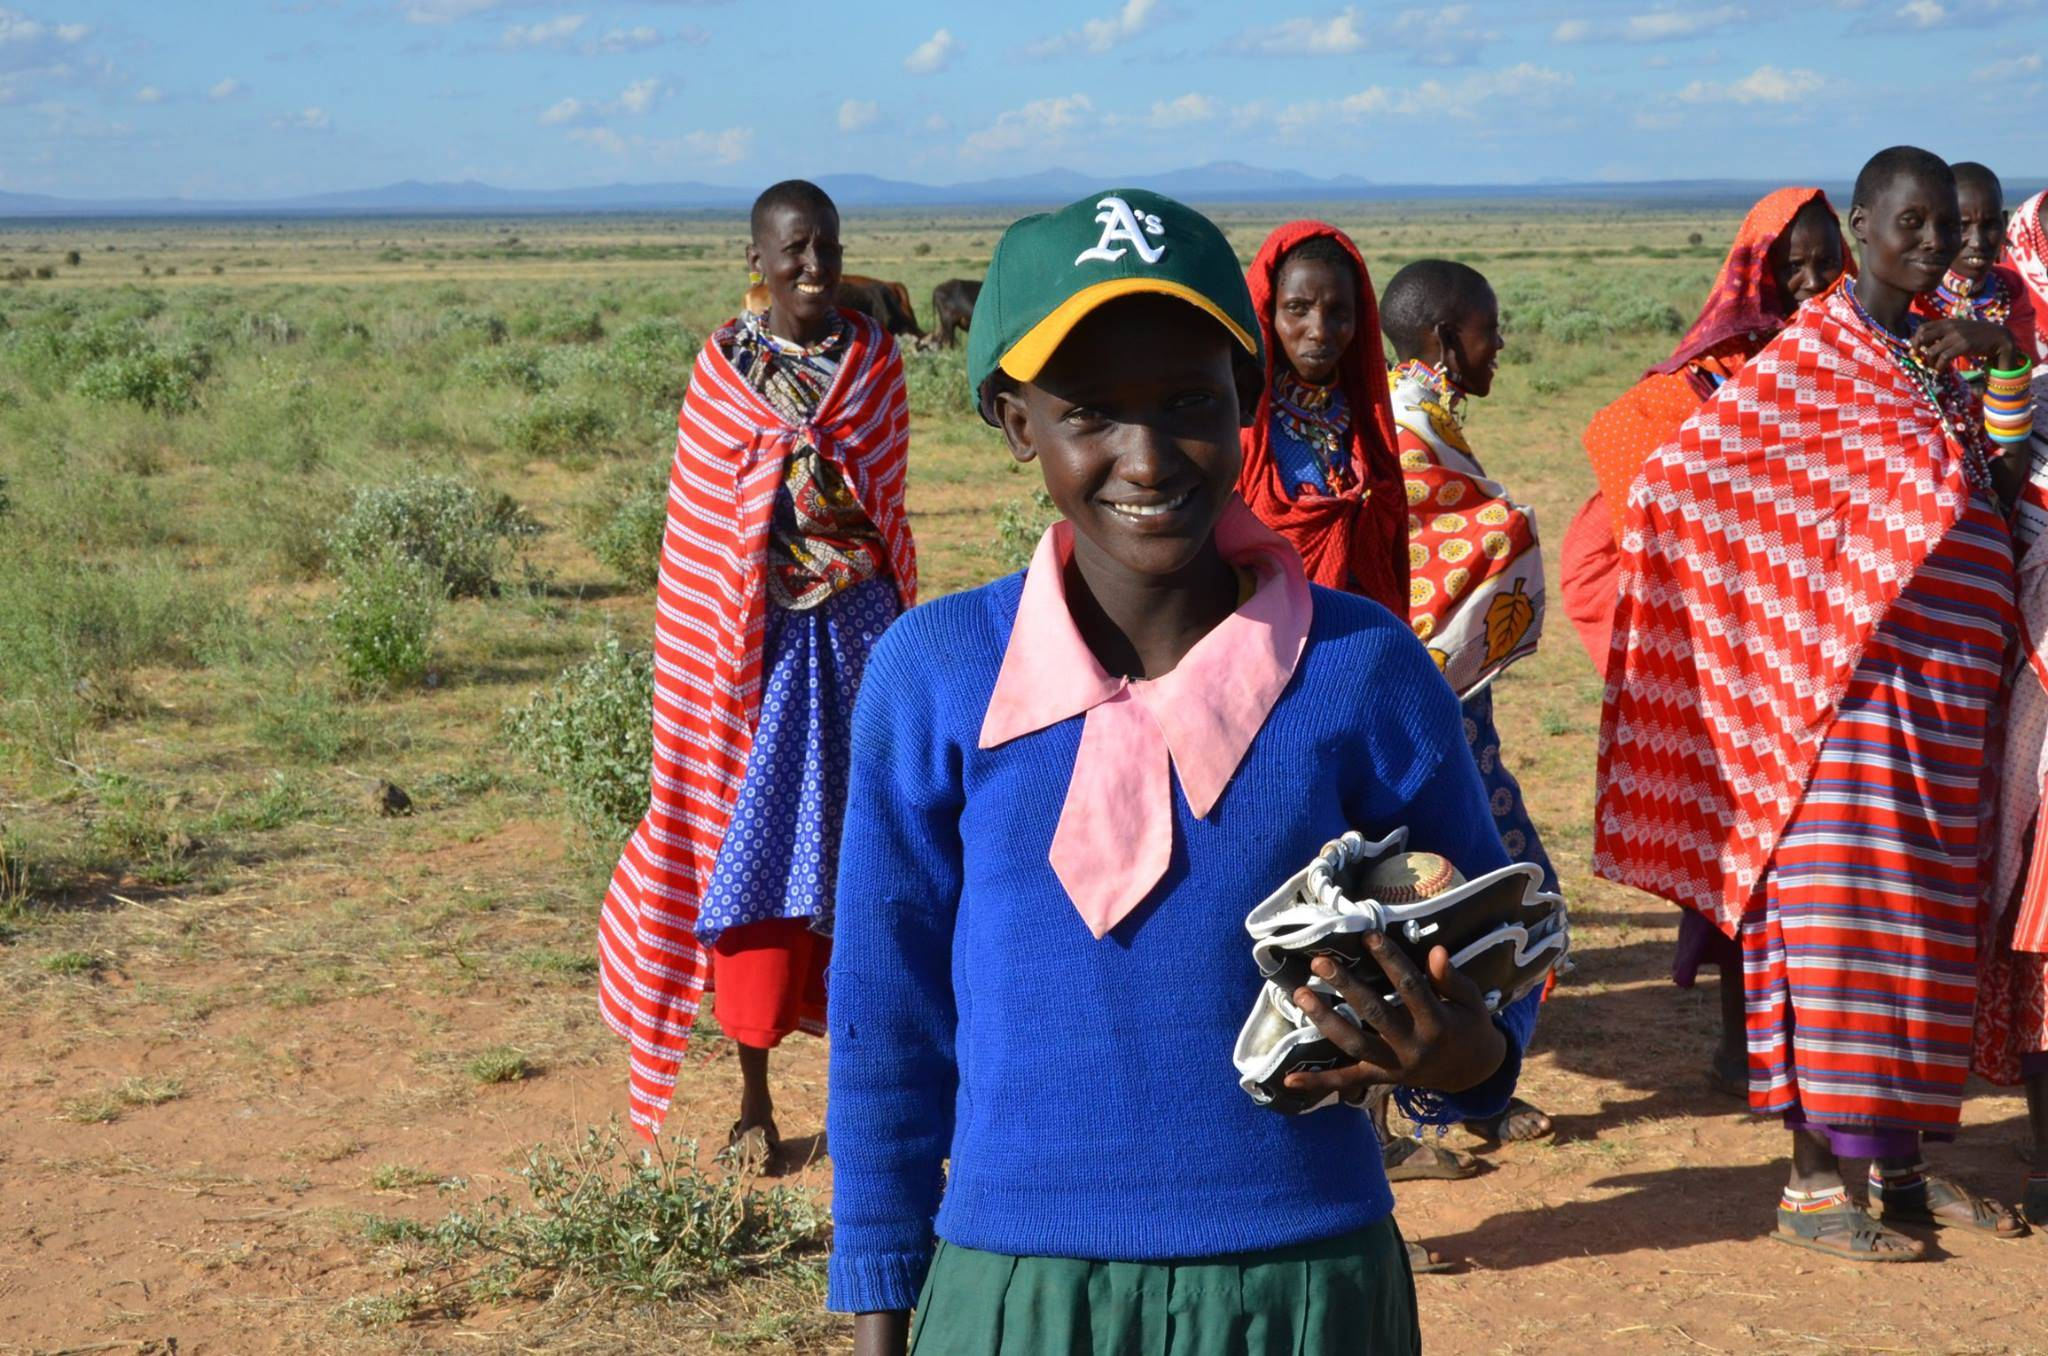 Young woman in Kenya poses with baseball gear donated by Gear for Goals during recent mission trip headed by Northbrook resident Dr. Warren Bruhl. Dreamweaver International